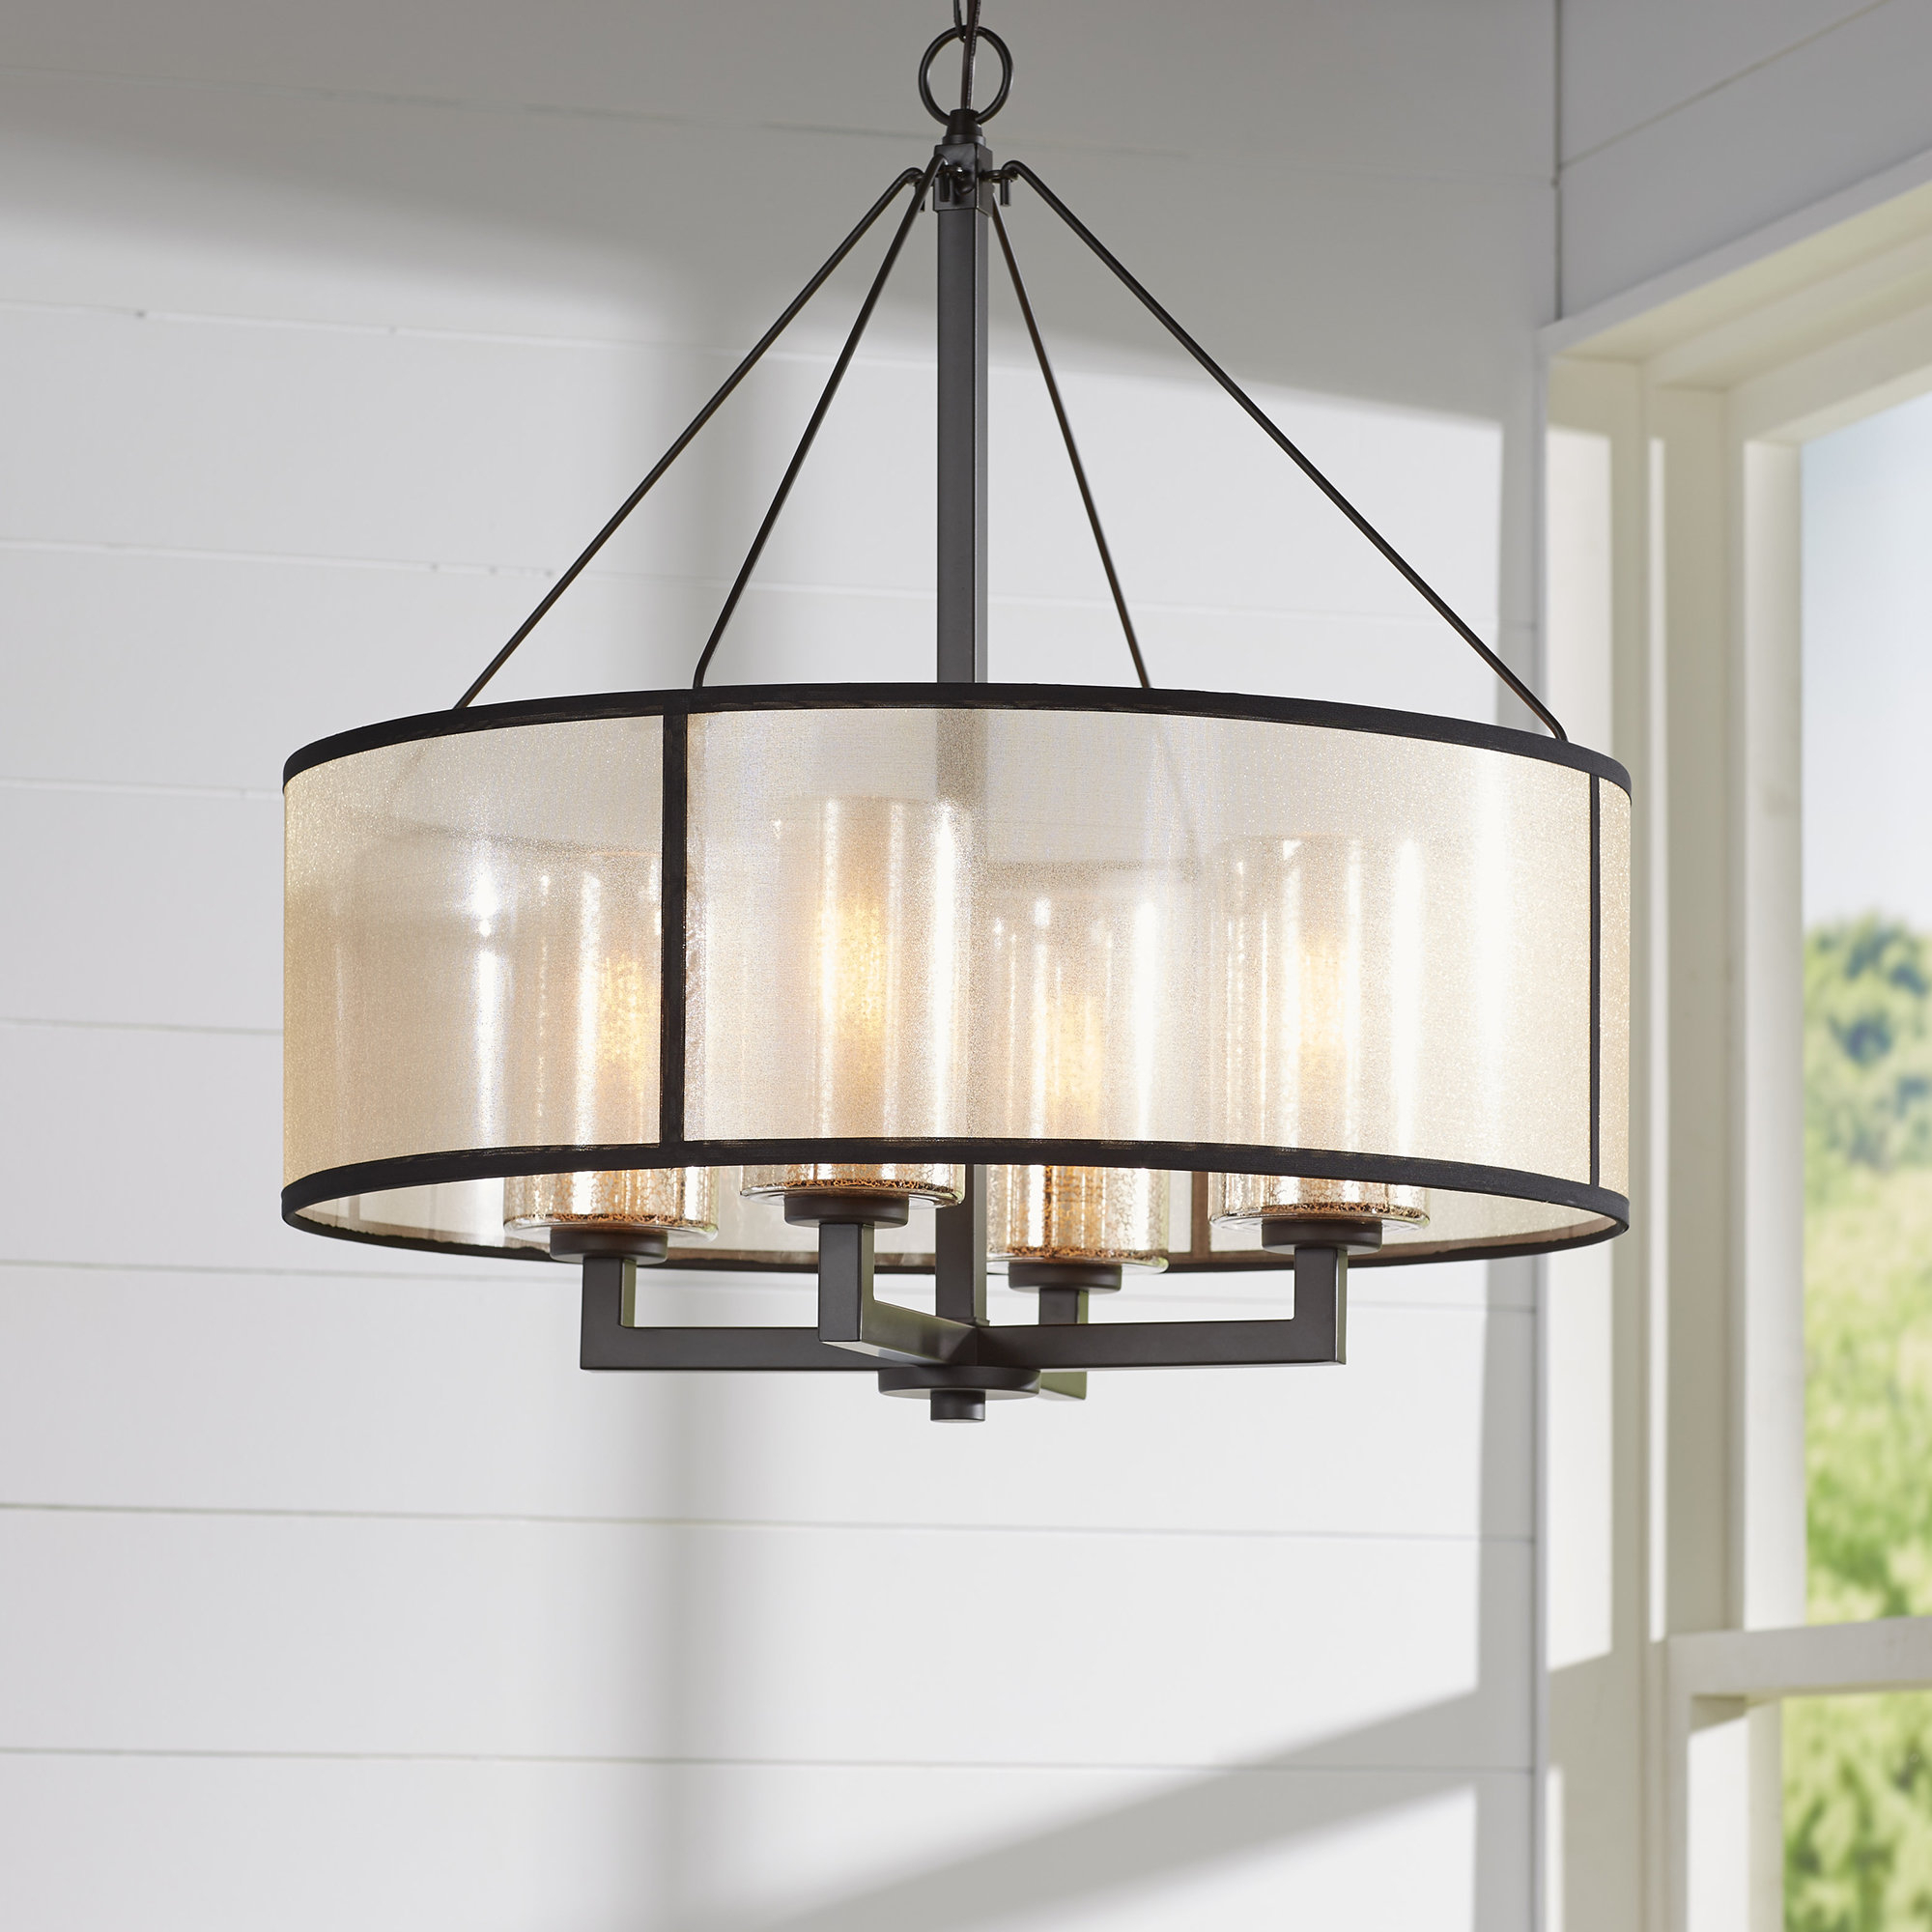 Dailey 4 Light Drum Chandelier With Famous Breithaup 4 Light Drum Chandeliers (View 9 of 25)